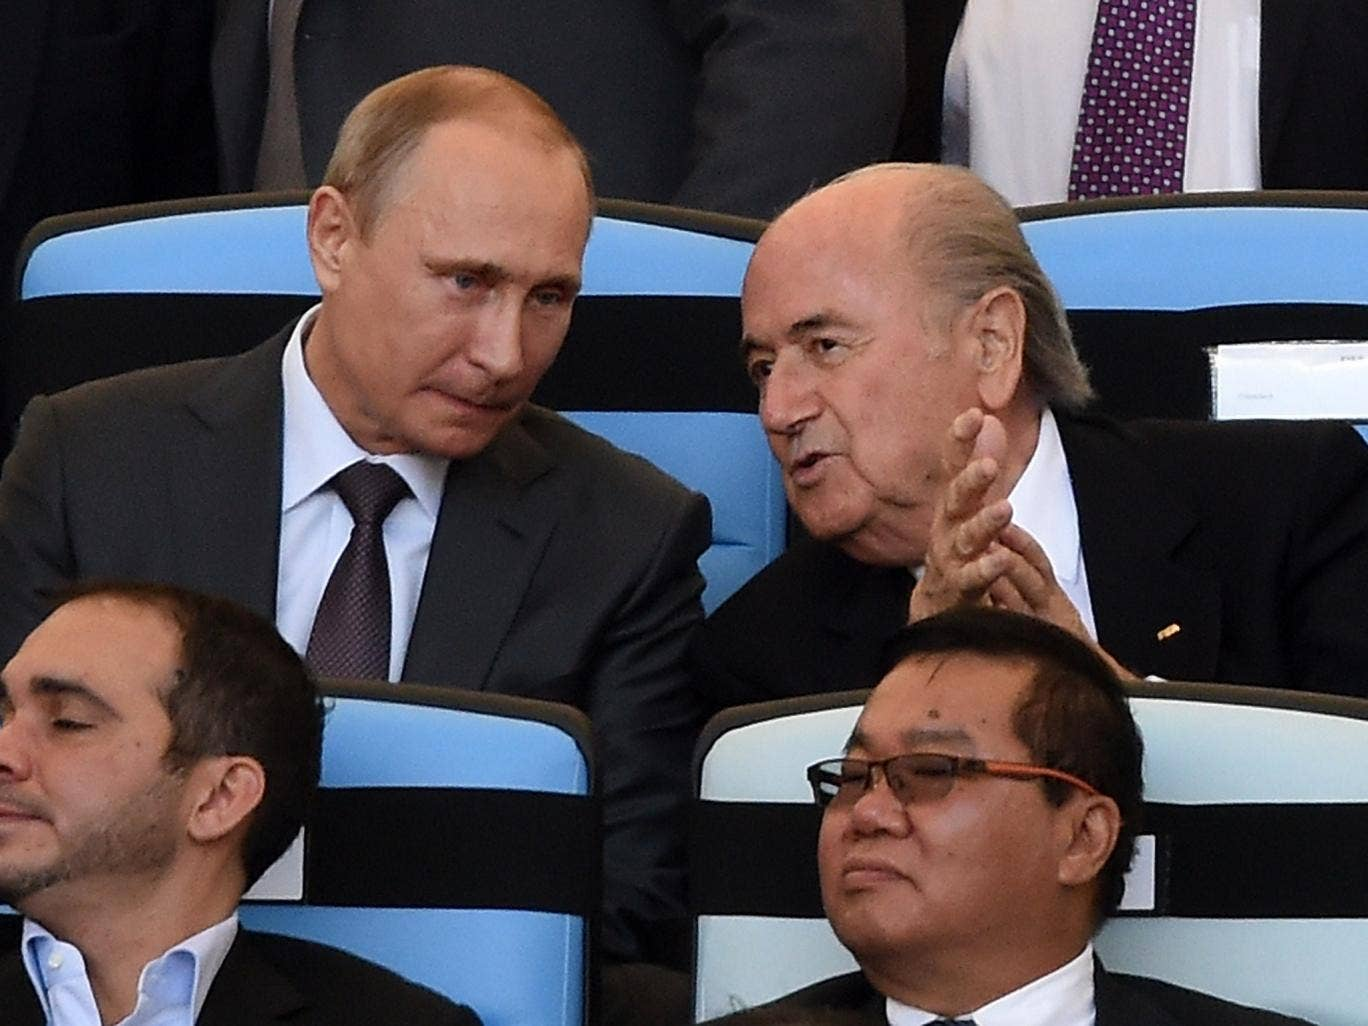 Sepp Blatter takes his seat for the World Cup final along with Vladimir Putin